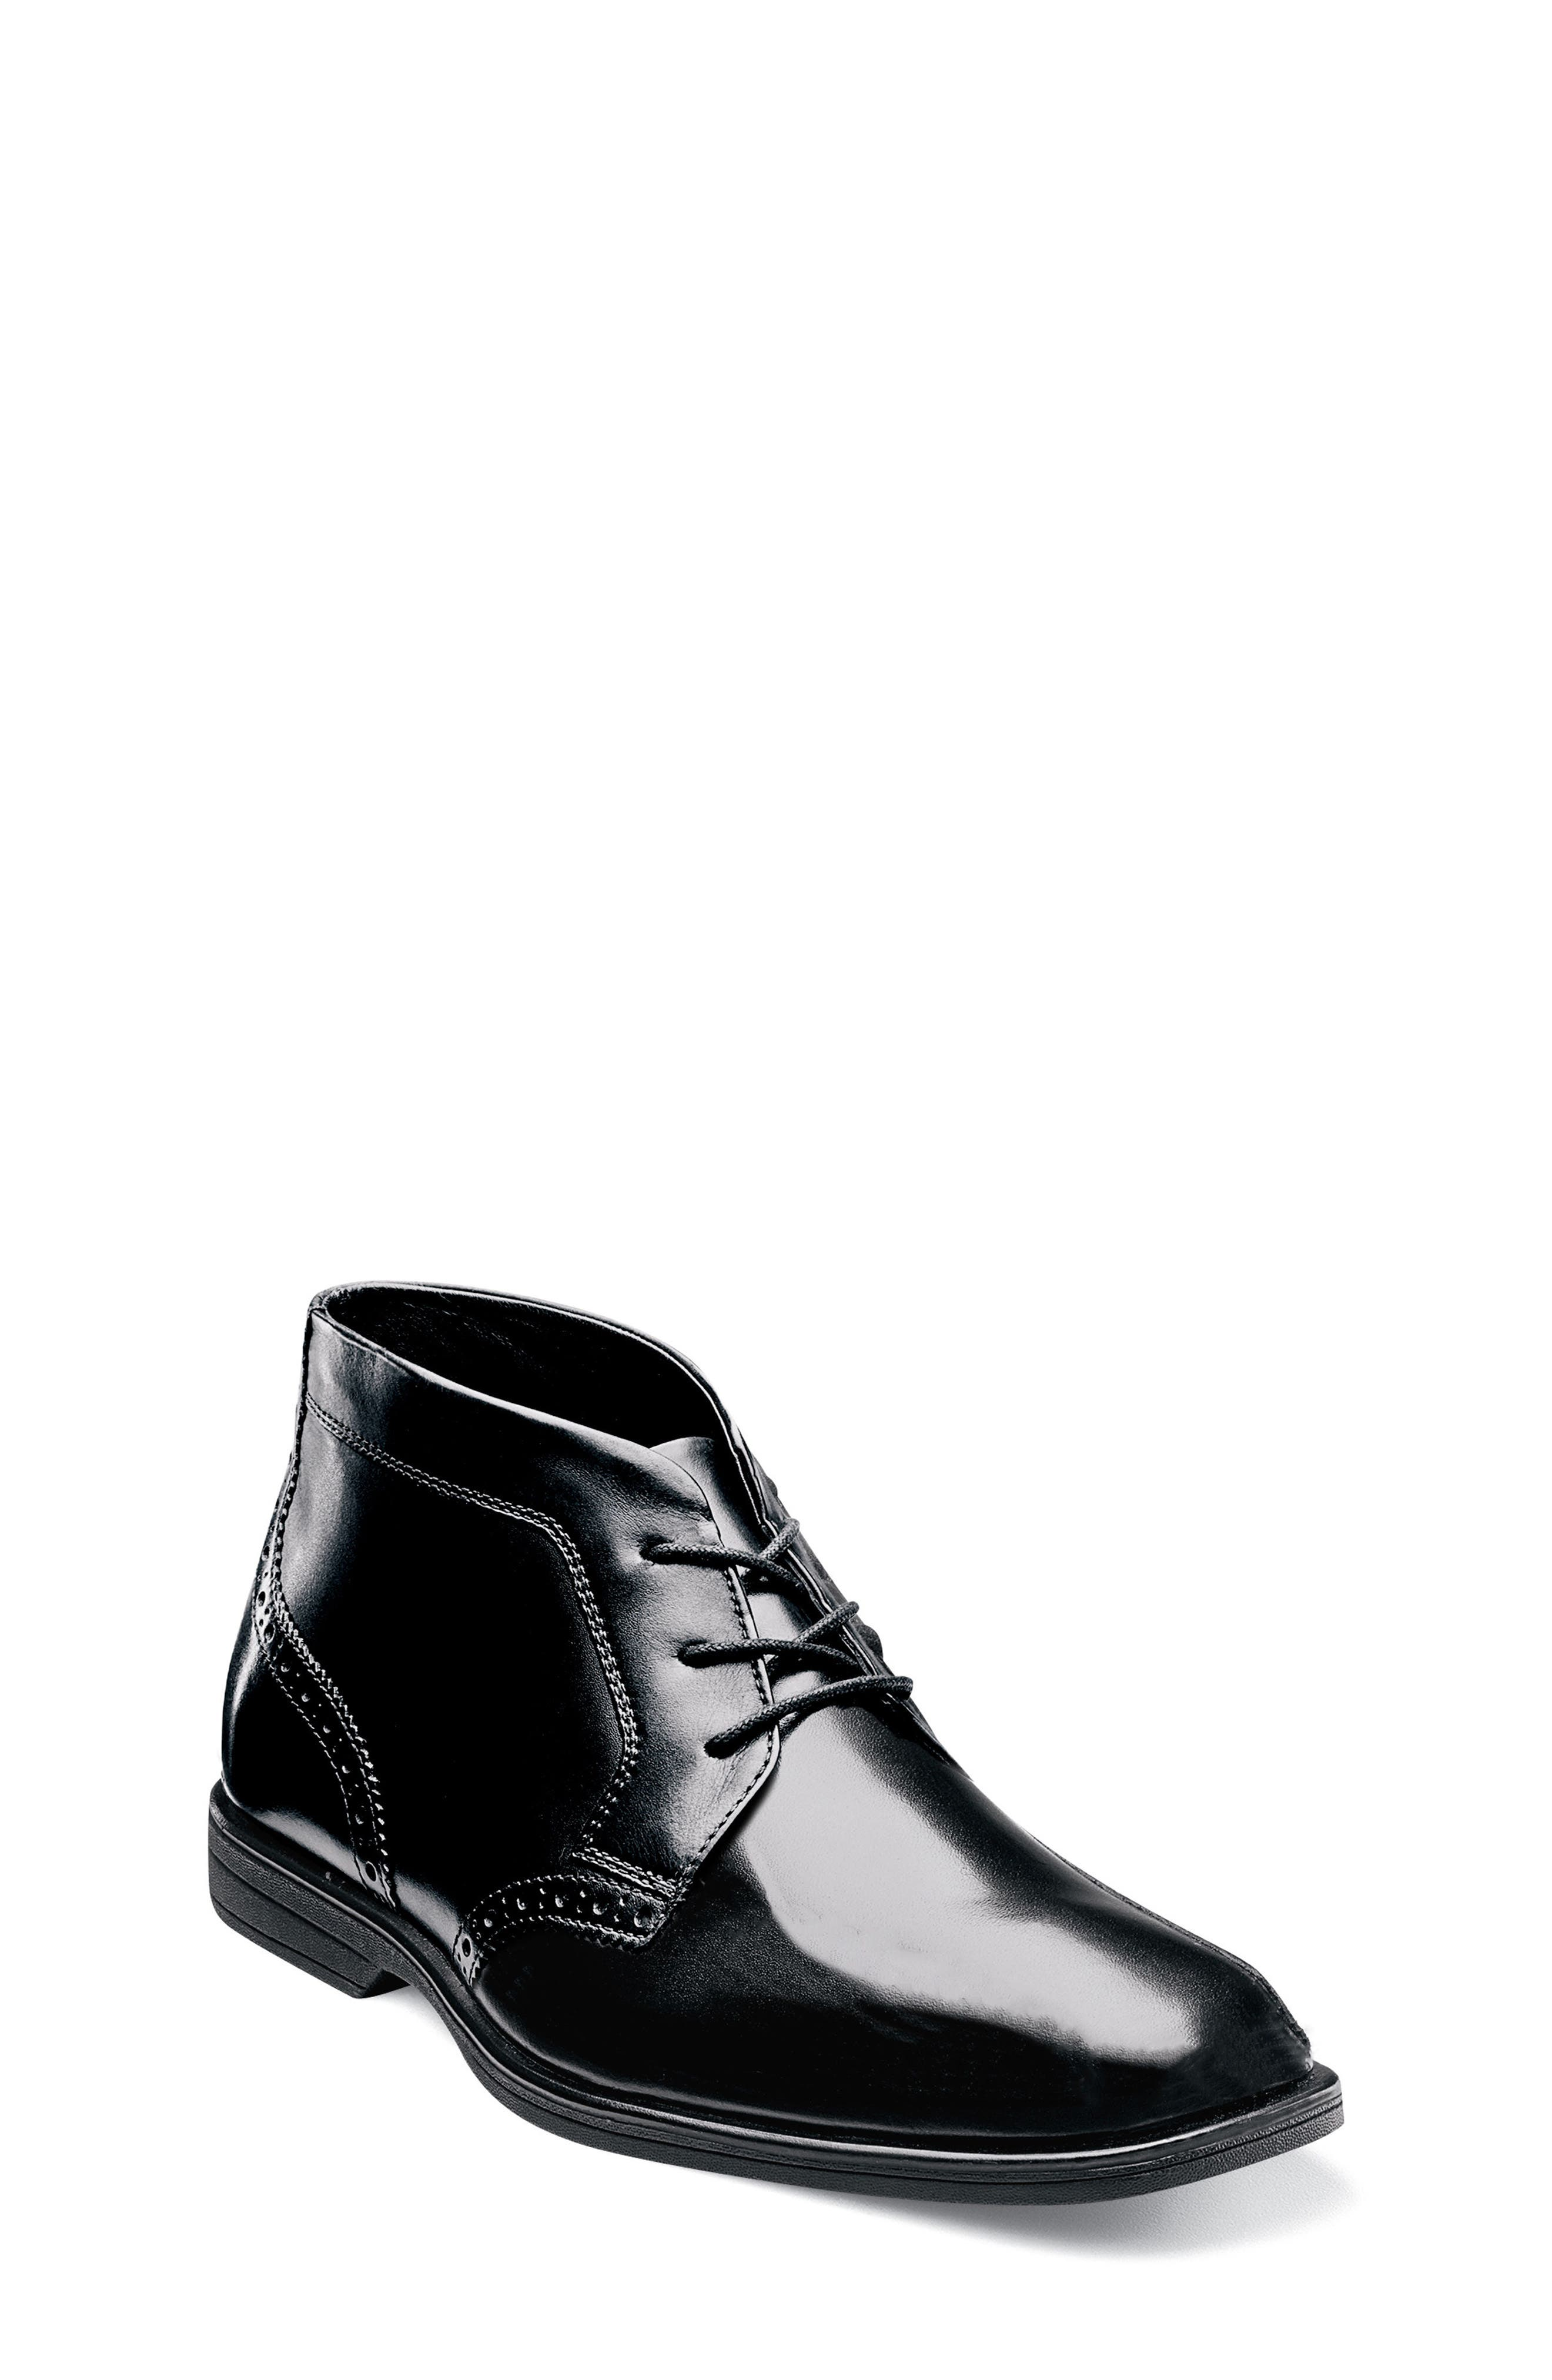 FLORSHEIM, 'Reveal' Chukka Boot, Main thumbnail 1, color, BLACK LEATHER